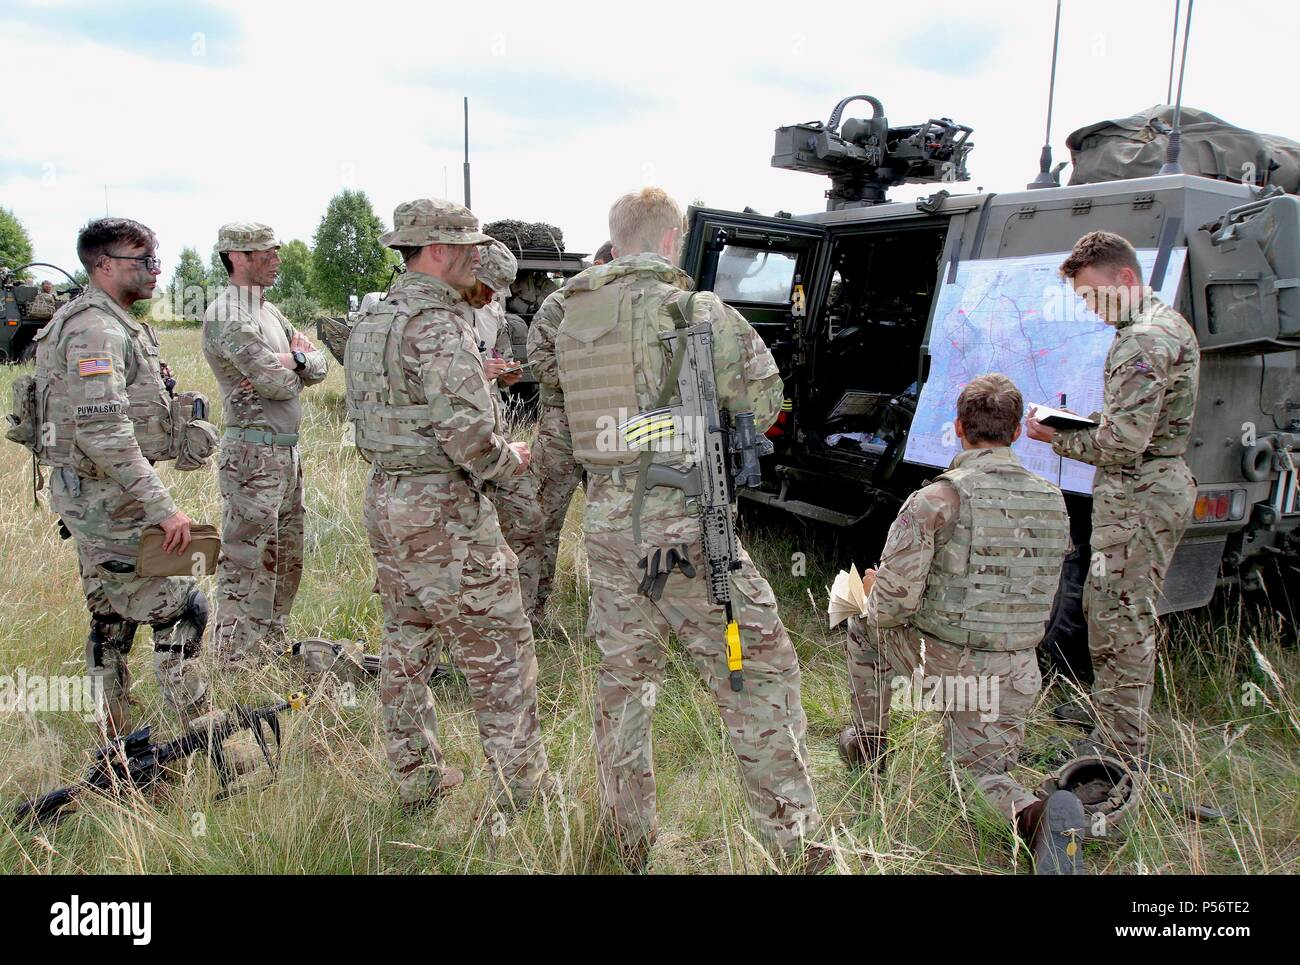 Lance Cpl. Ben Tong, from 1st The Queens Dragoon Guards, part of Battle Group Poland briefs U.K. and U.S. Army soldiers on enemy intel during Saber Strike 18 in Bemowo Piskie Training Area, Poland on June 11, 2018, June 12, 2018. Saber Strike 18 is the eighth iteration of the long-standing U.S. Army Europe-led cooperative training exercise designed to enhance interoperability among allies and regional partners. (Michigan Army National Guard photo by 1st Lt. Erica Mitchell/ released). () - Stock Image